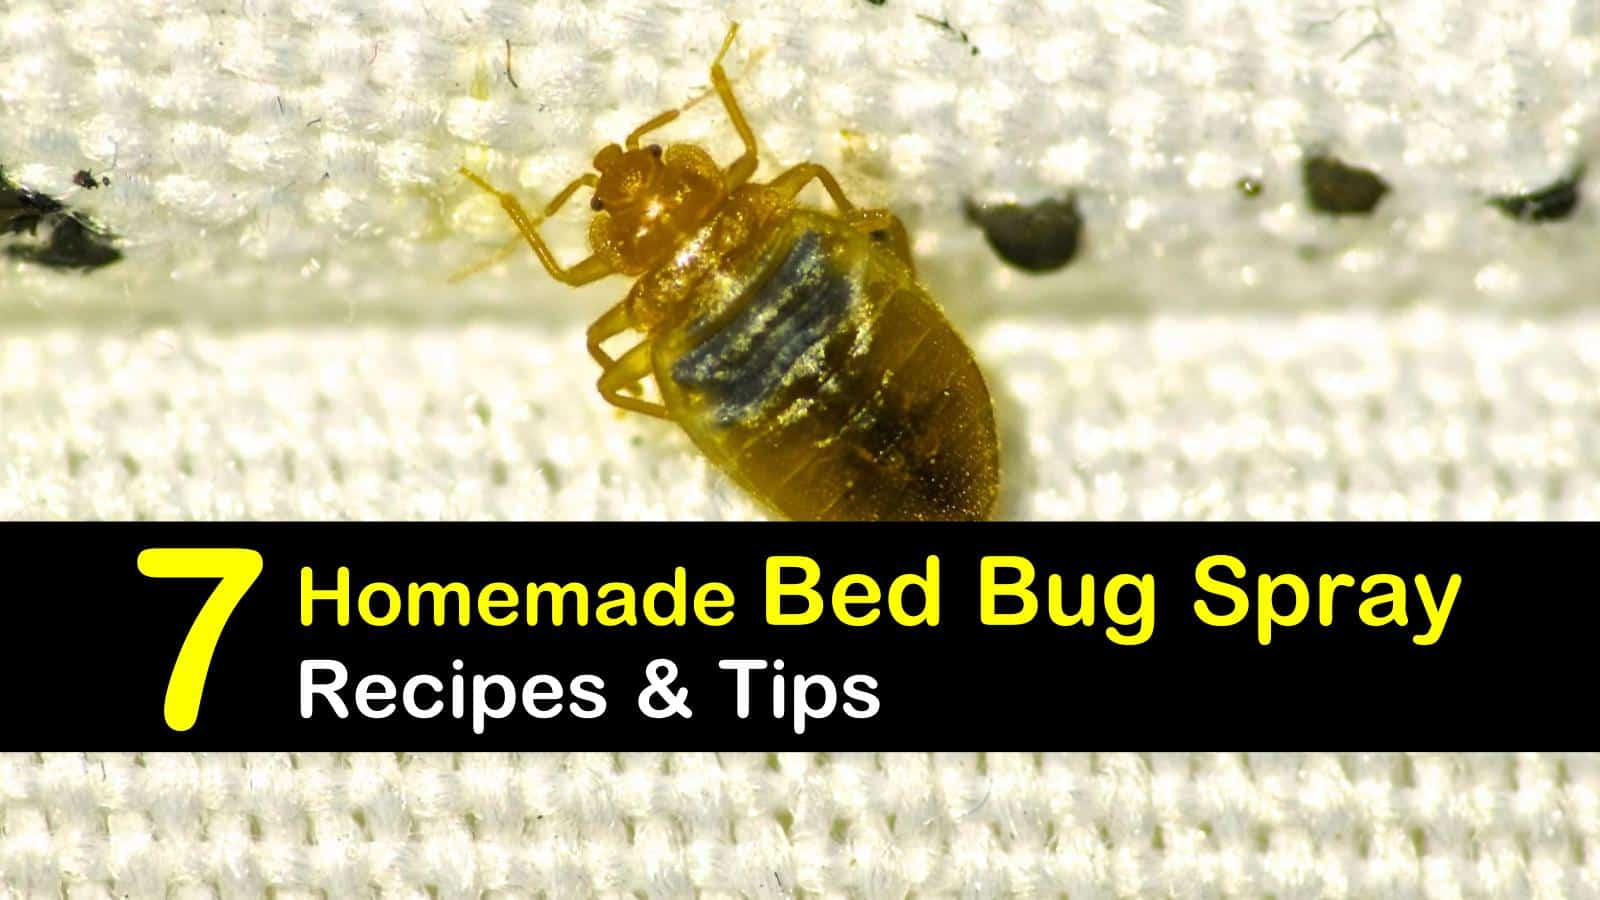 homemade bed bug spray titleimg1